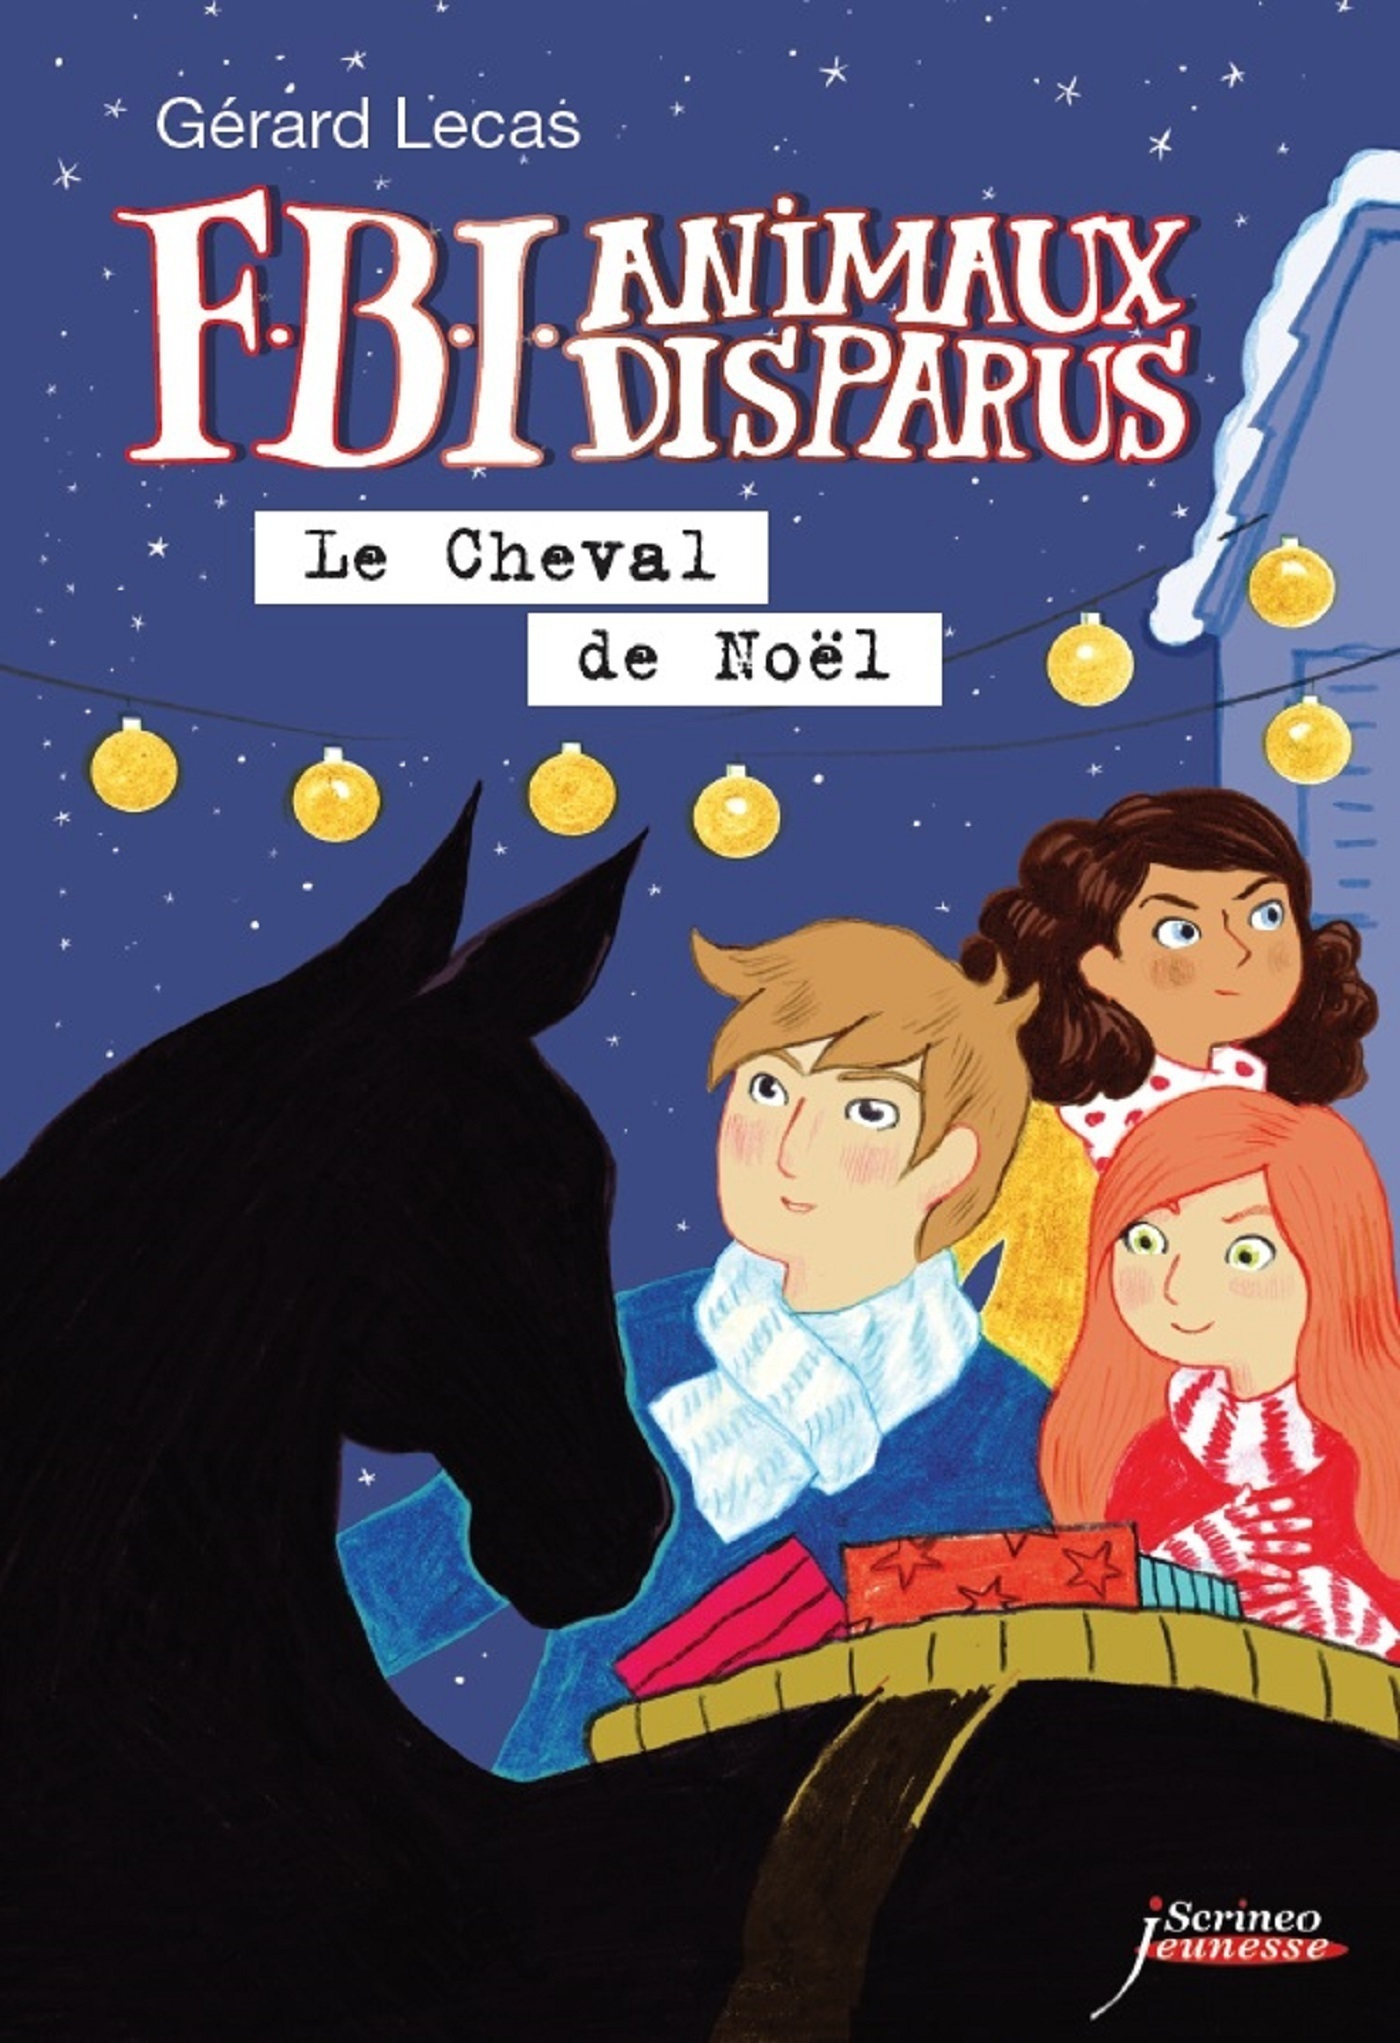 FBI Animaux disparus - Le cheval de noel